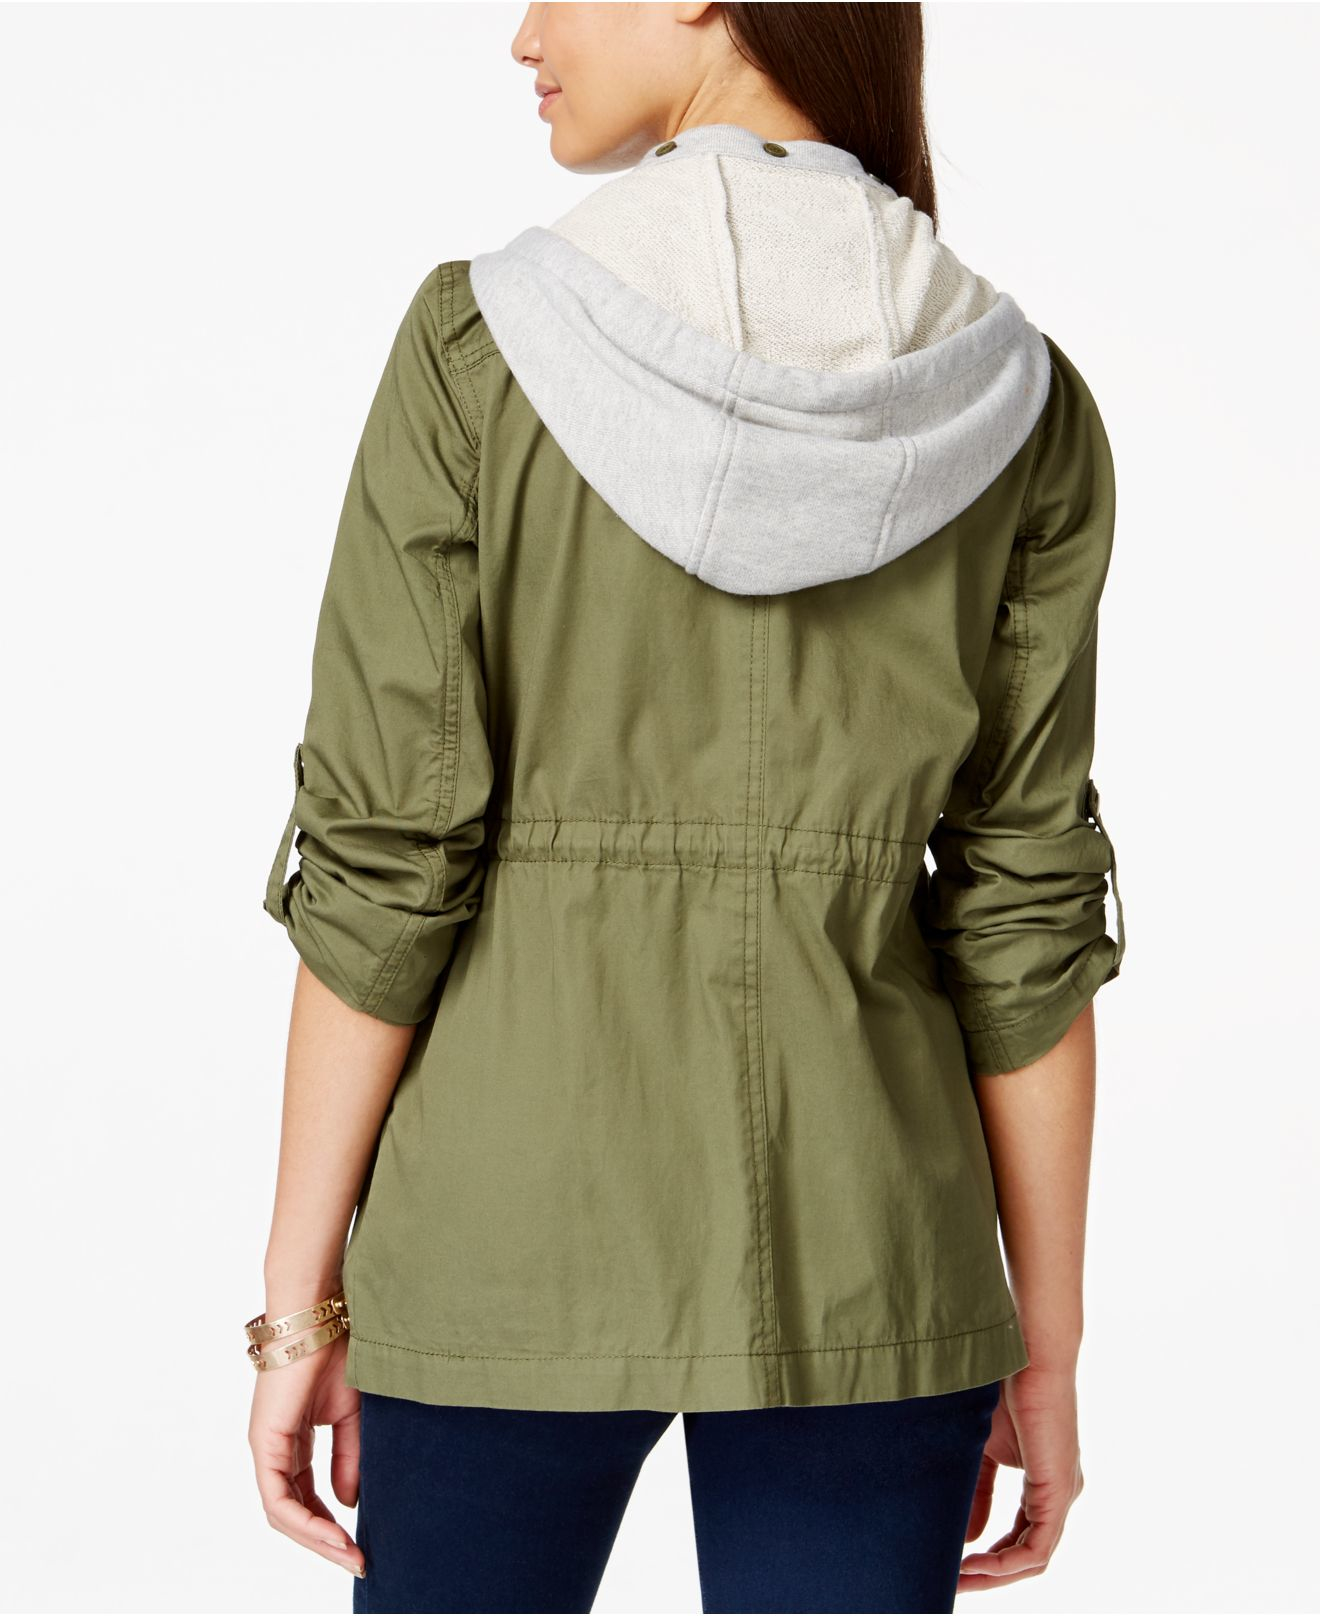 Collection B Contrast Hooded Anorak Jacket In Green Olive